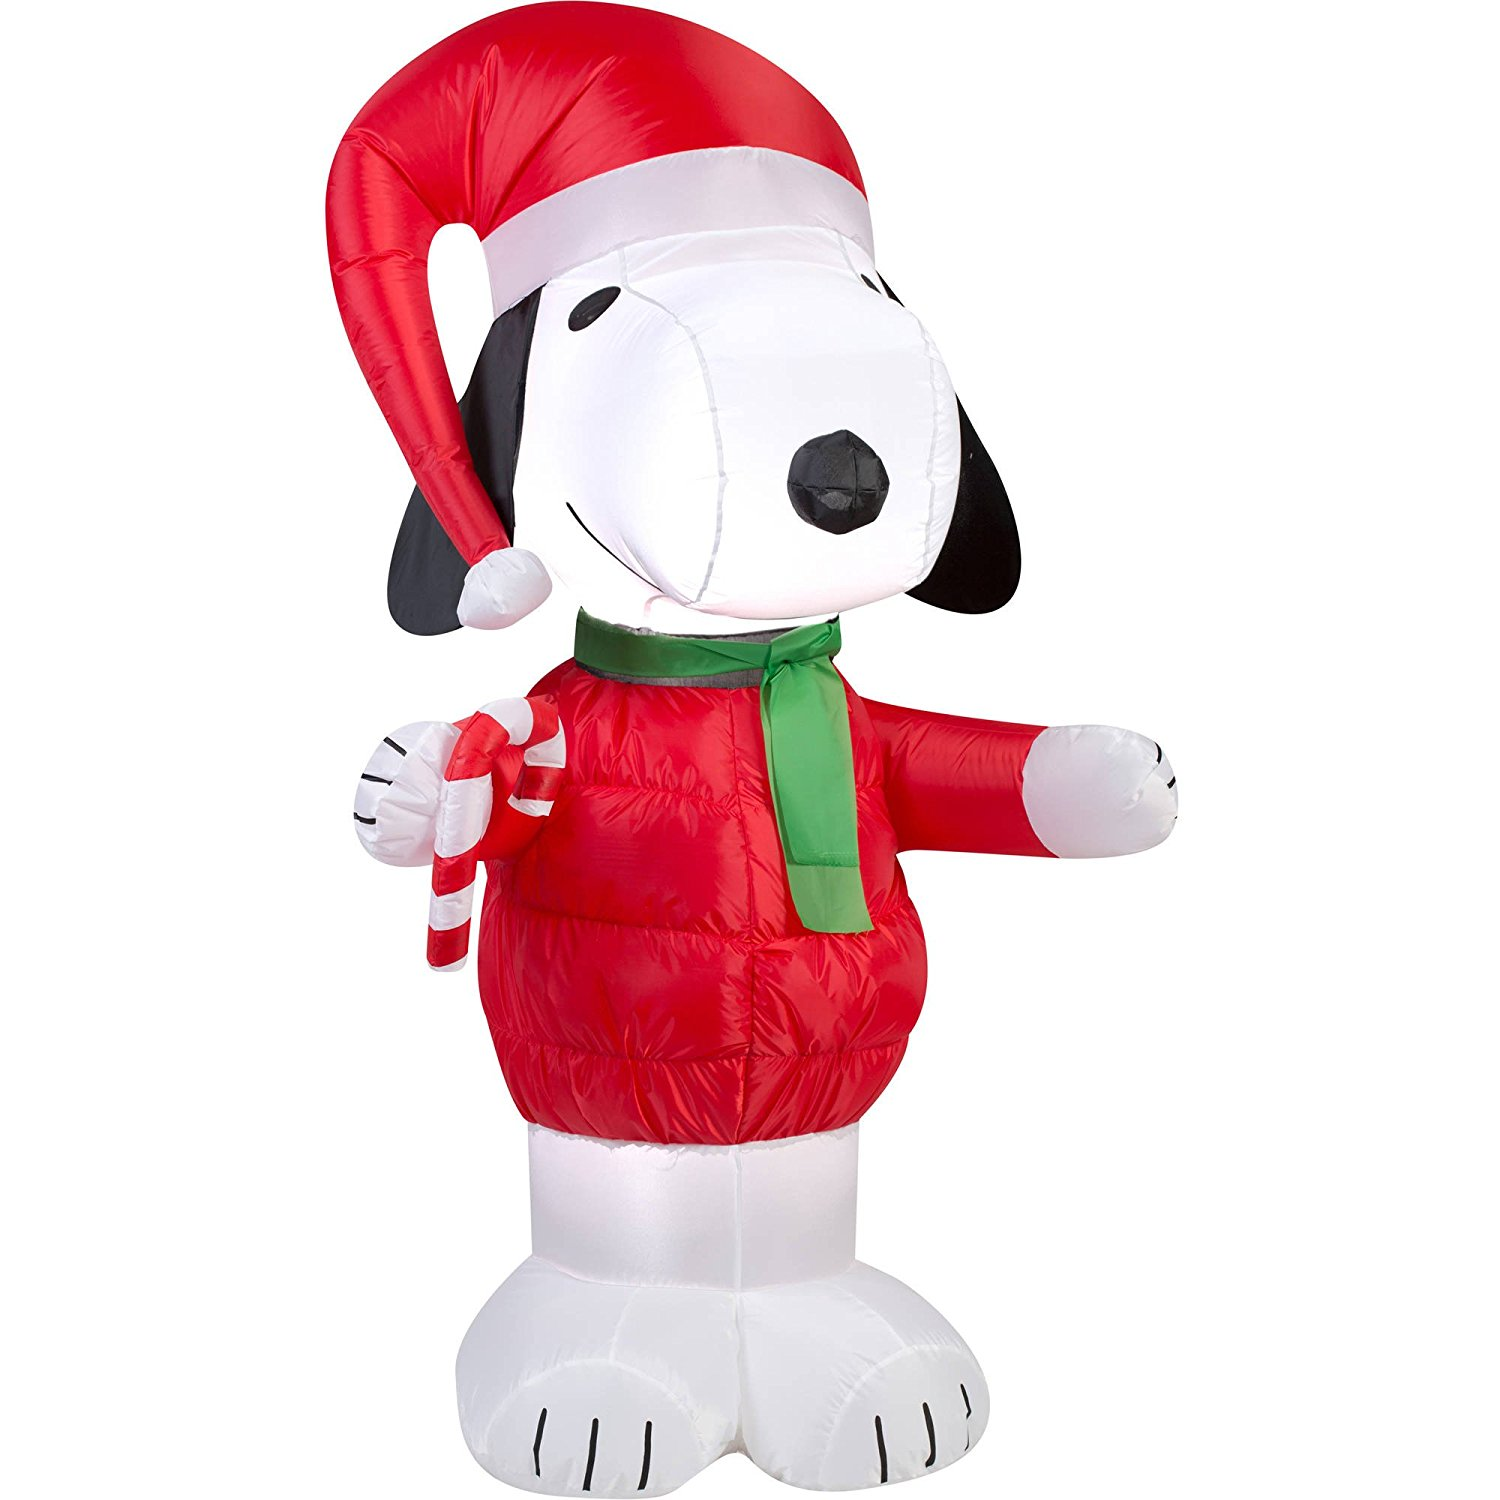 Peanuts Chirstmas Snoopy with Candy Cane Blowup Inflatable Lawn ...